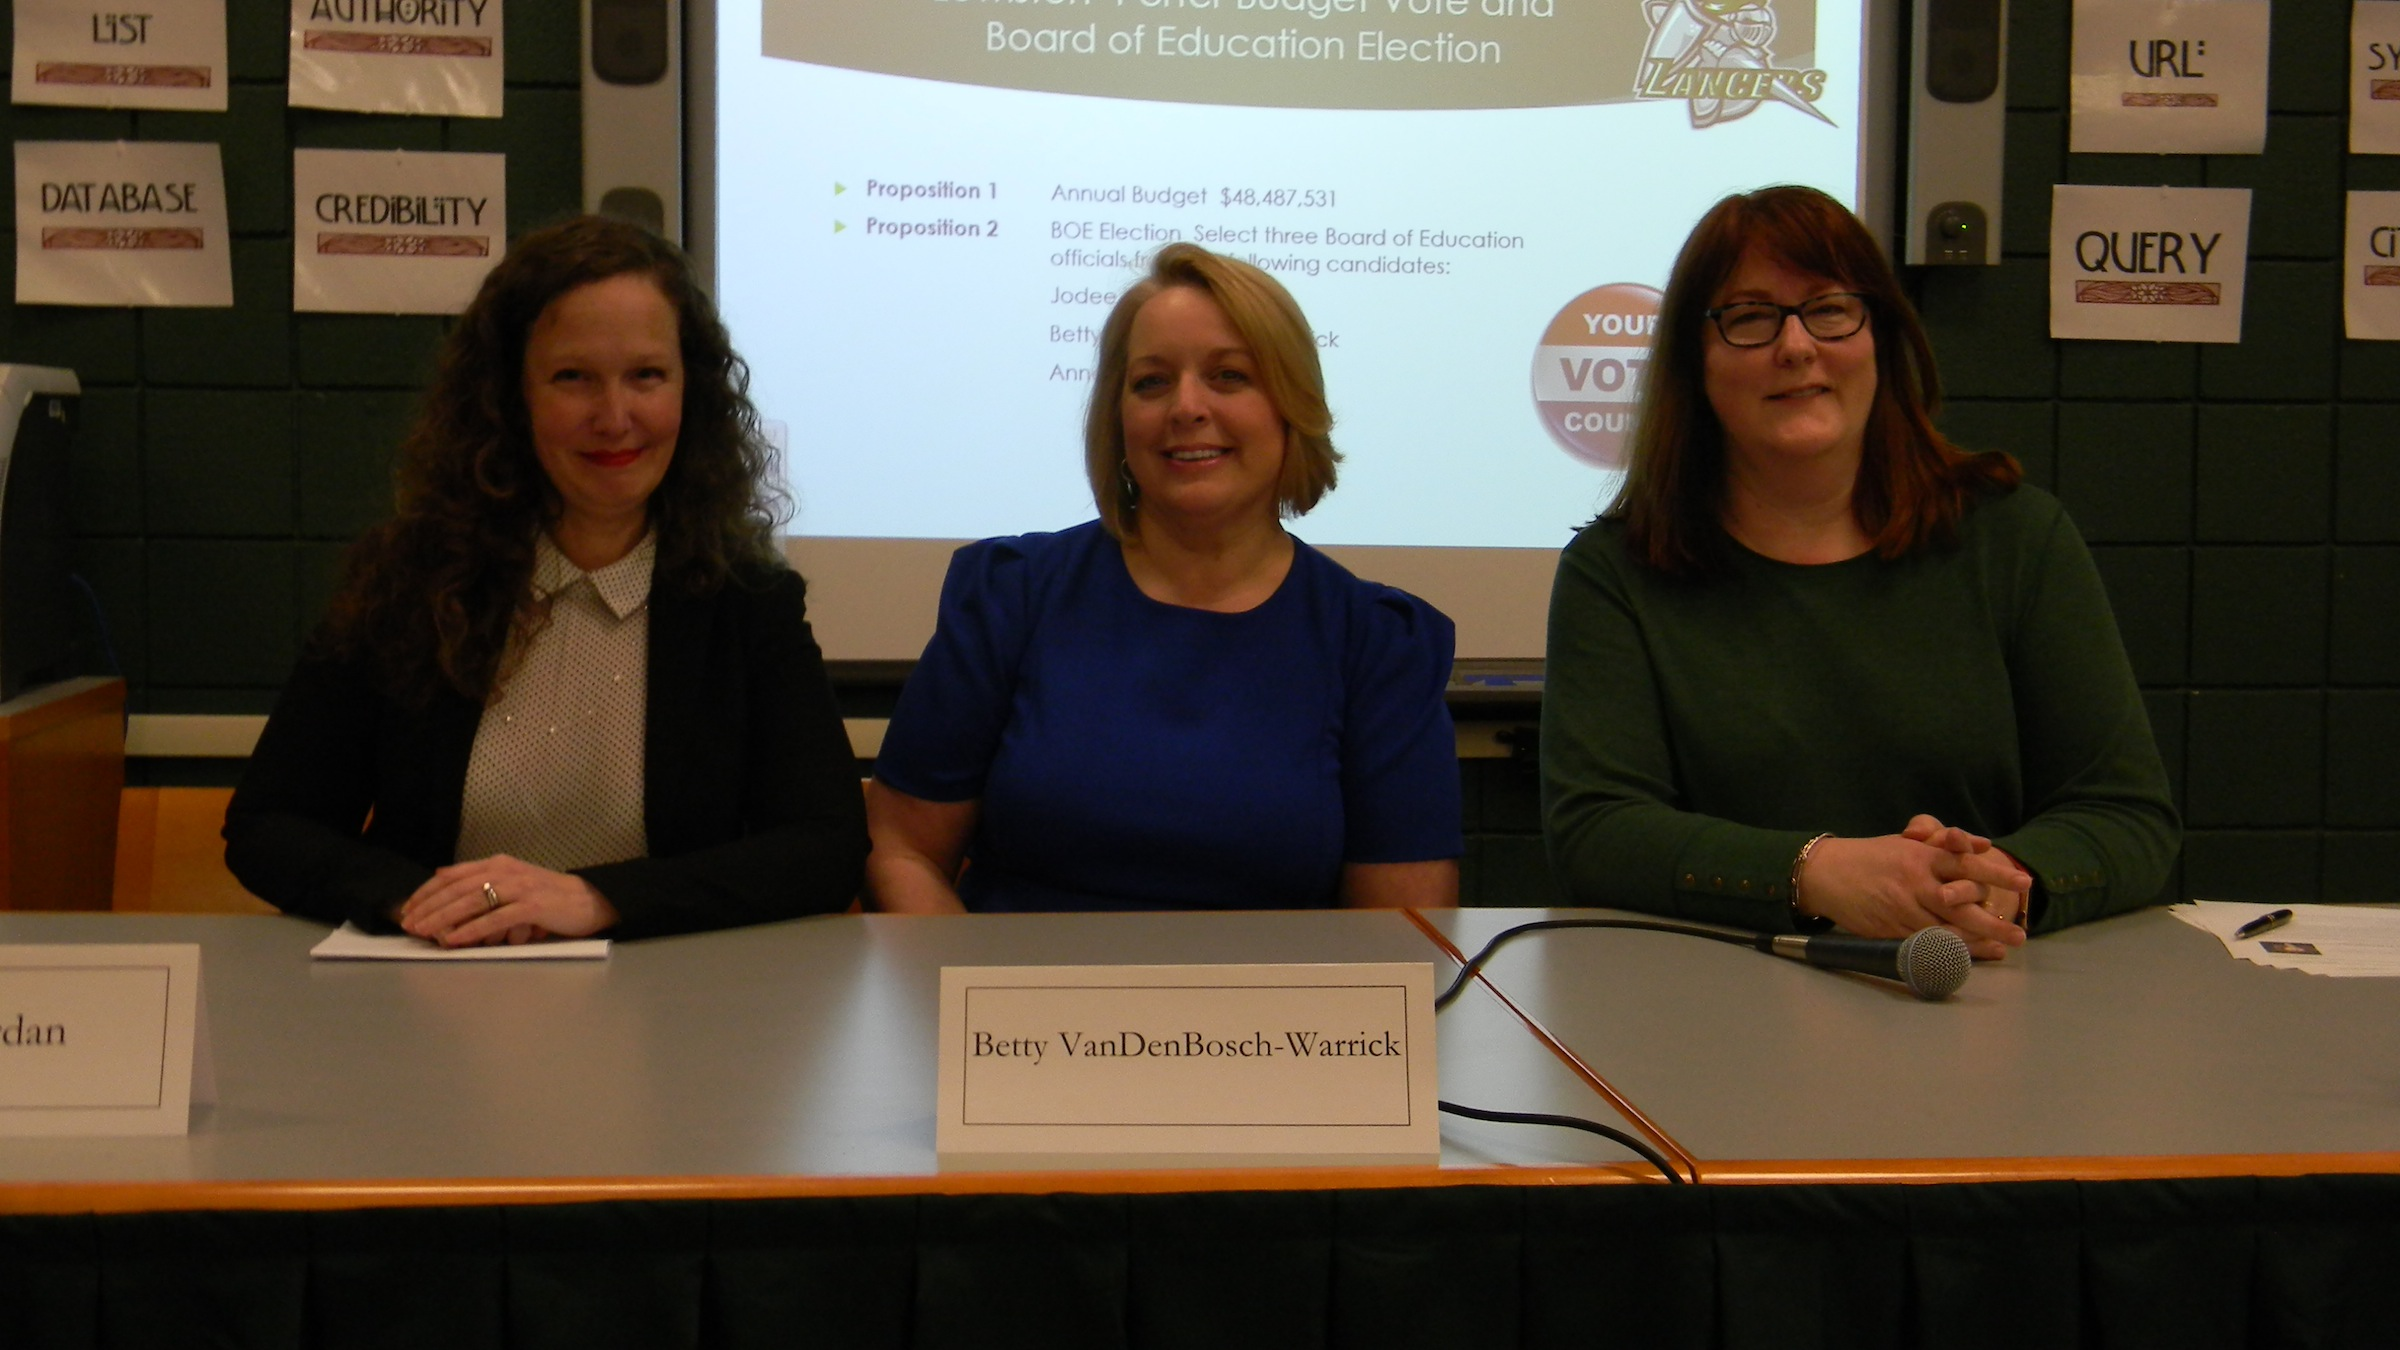 Newly-elected Lewiston-Porter Board of Education members, from left, Jodee Riordan, Betty VanDenBosch-Warrick and Ann Orr. (Photo by Terry Duffy)